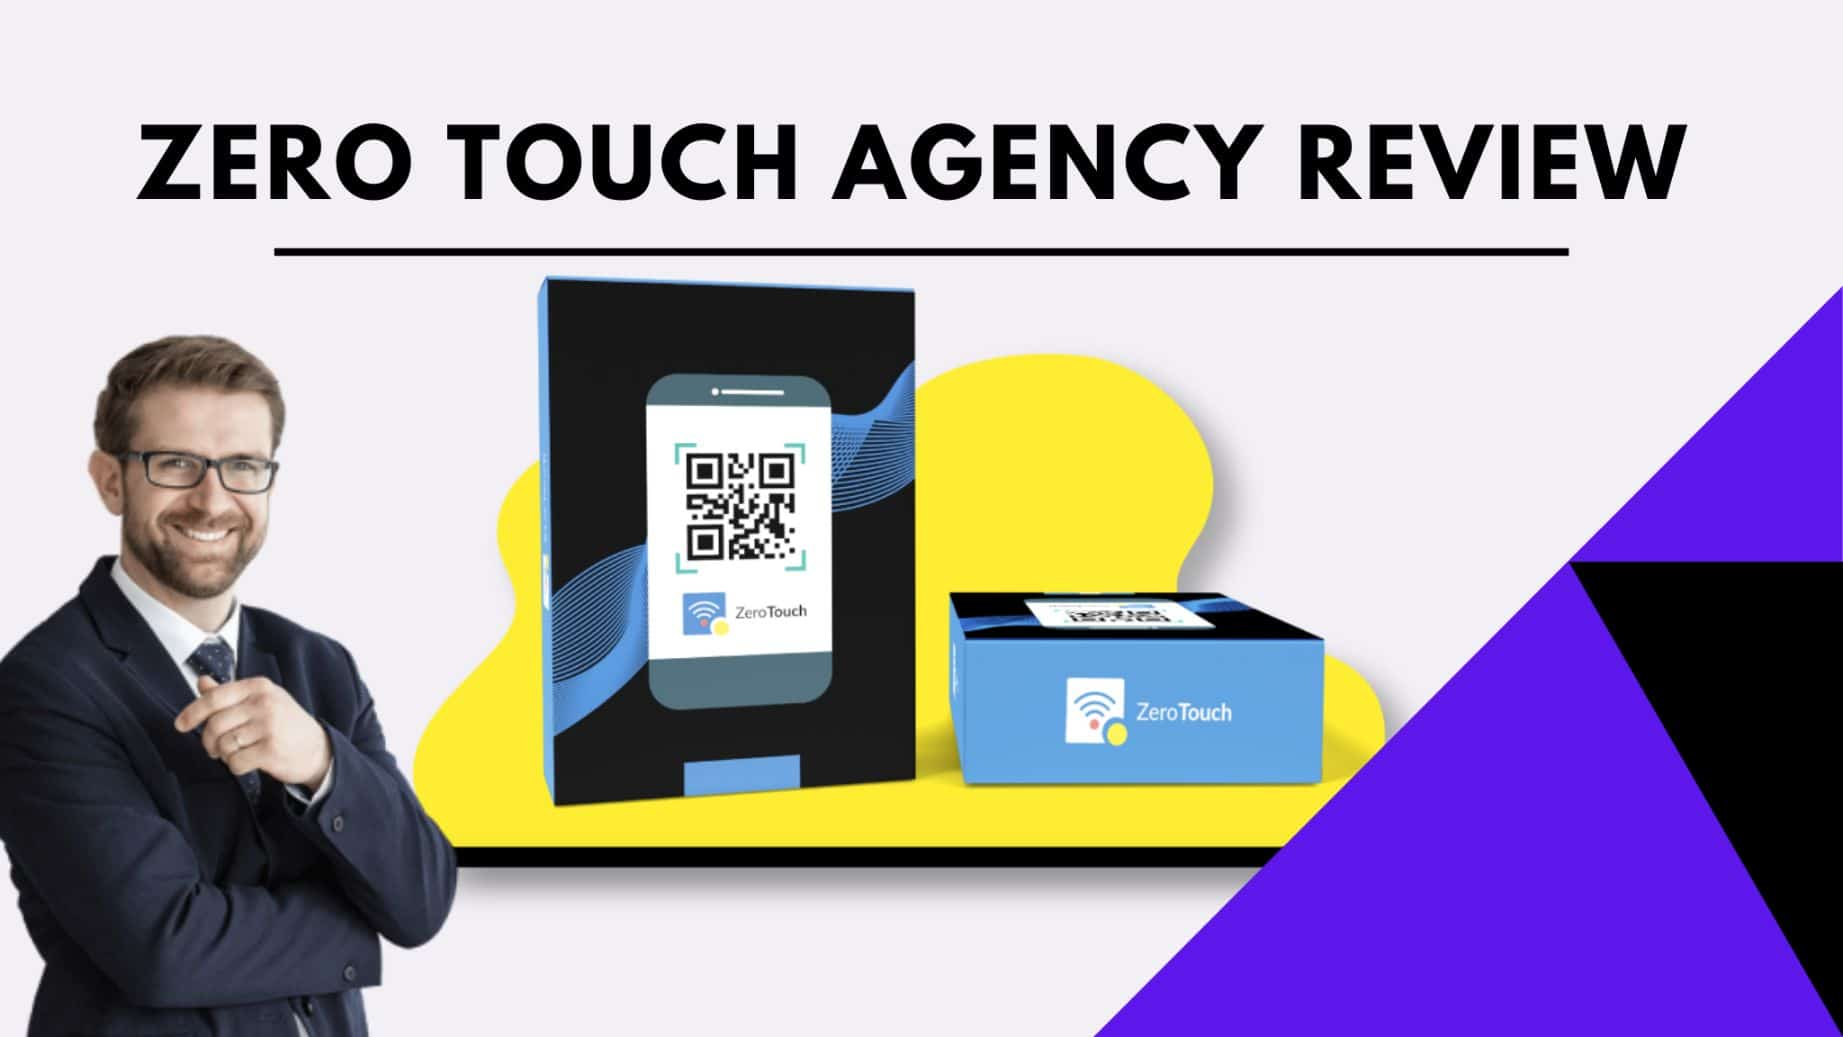 ZERO TOUCH AGENCY REVIEW